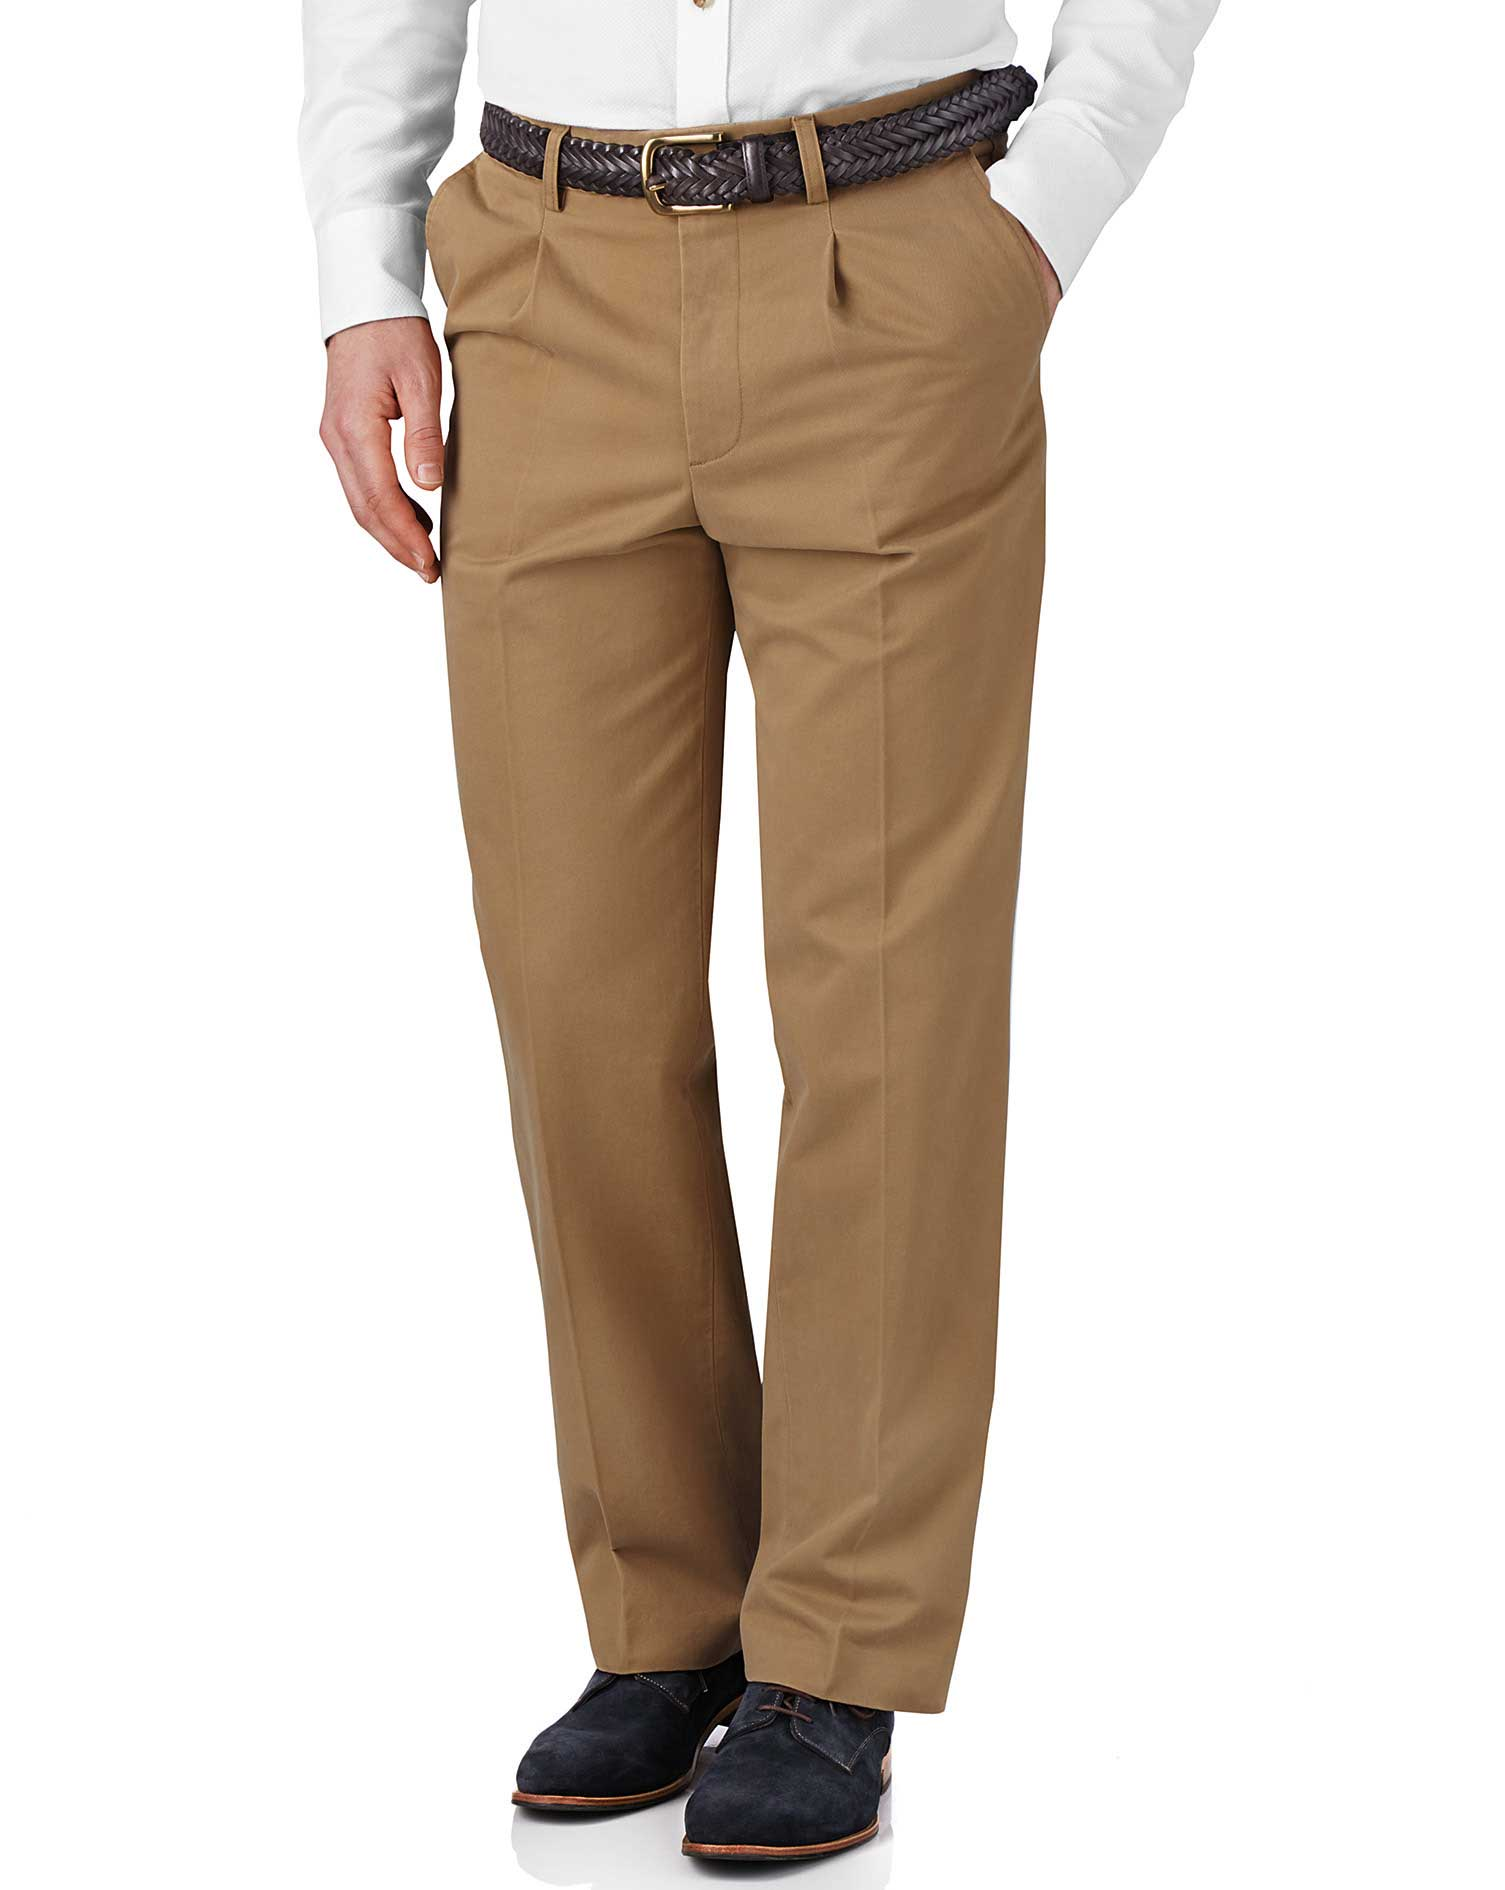 Tan Classic Fit Single Pleat Weekend Cotton Chino Trousers Size W32 L30 by Charles Tyrwhitt